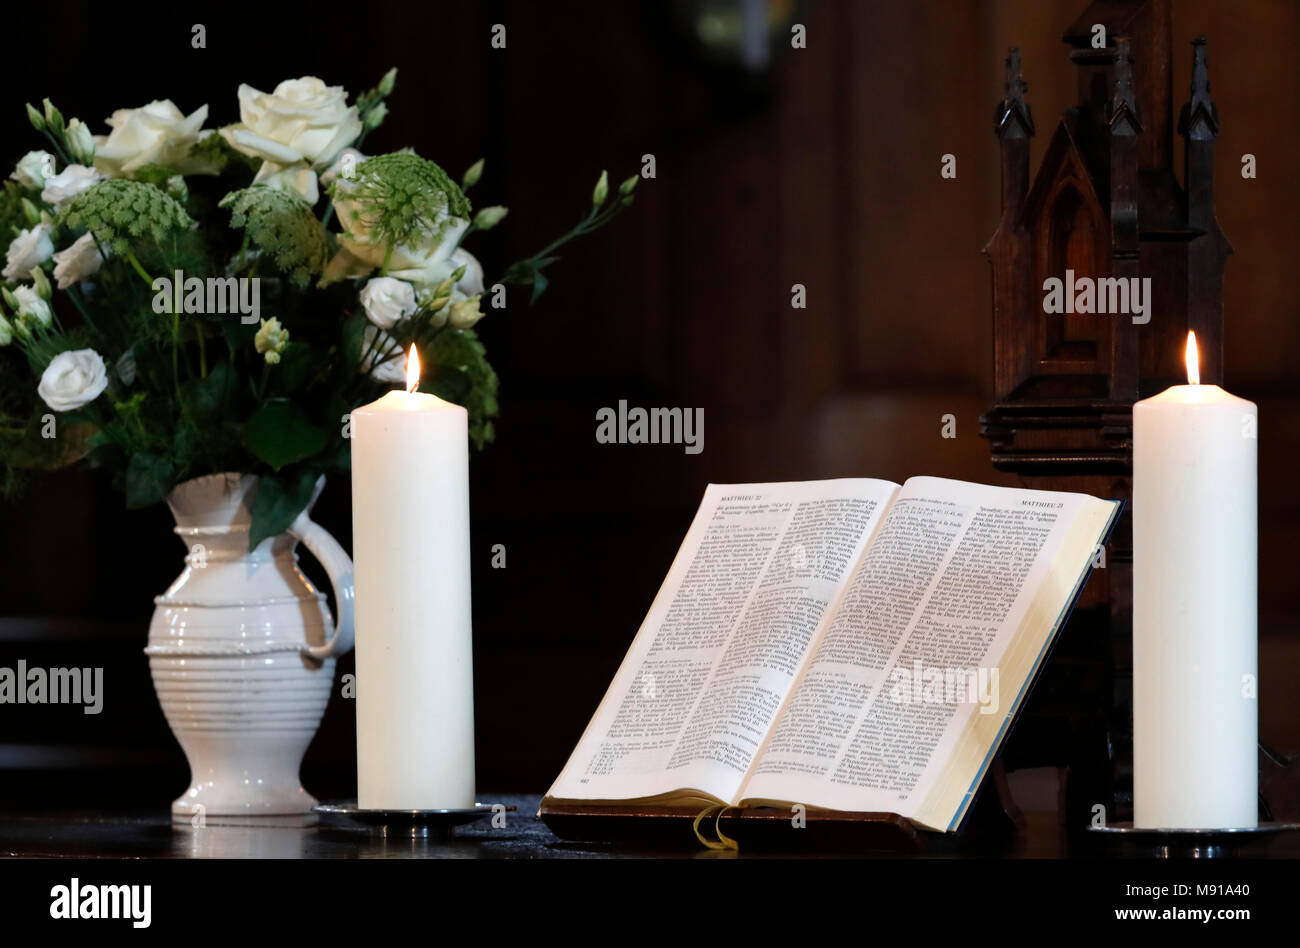 Church candles and open  bible on an altar.  Strasbourg. France. Stock Photo